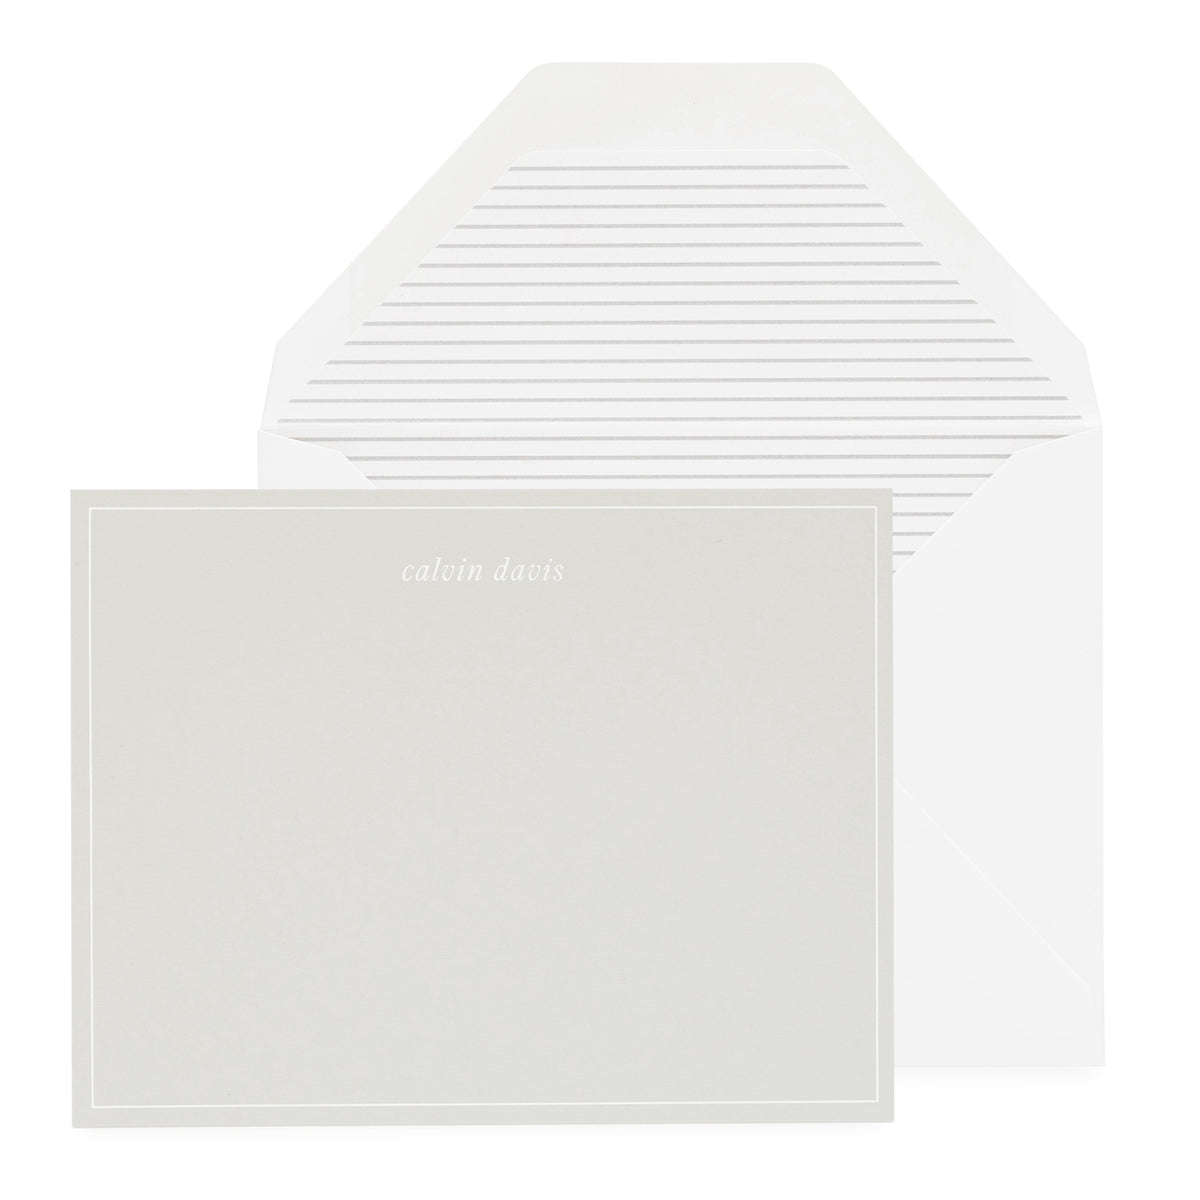 Grey paper personalized stationery with grey striped liner